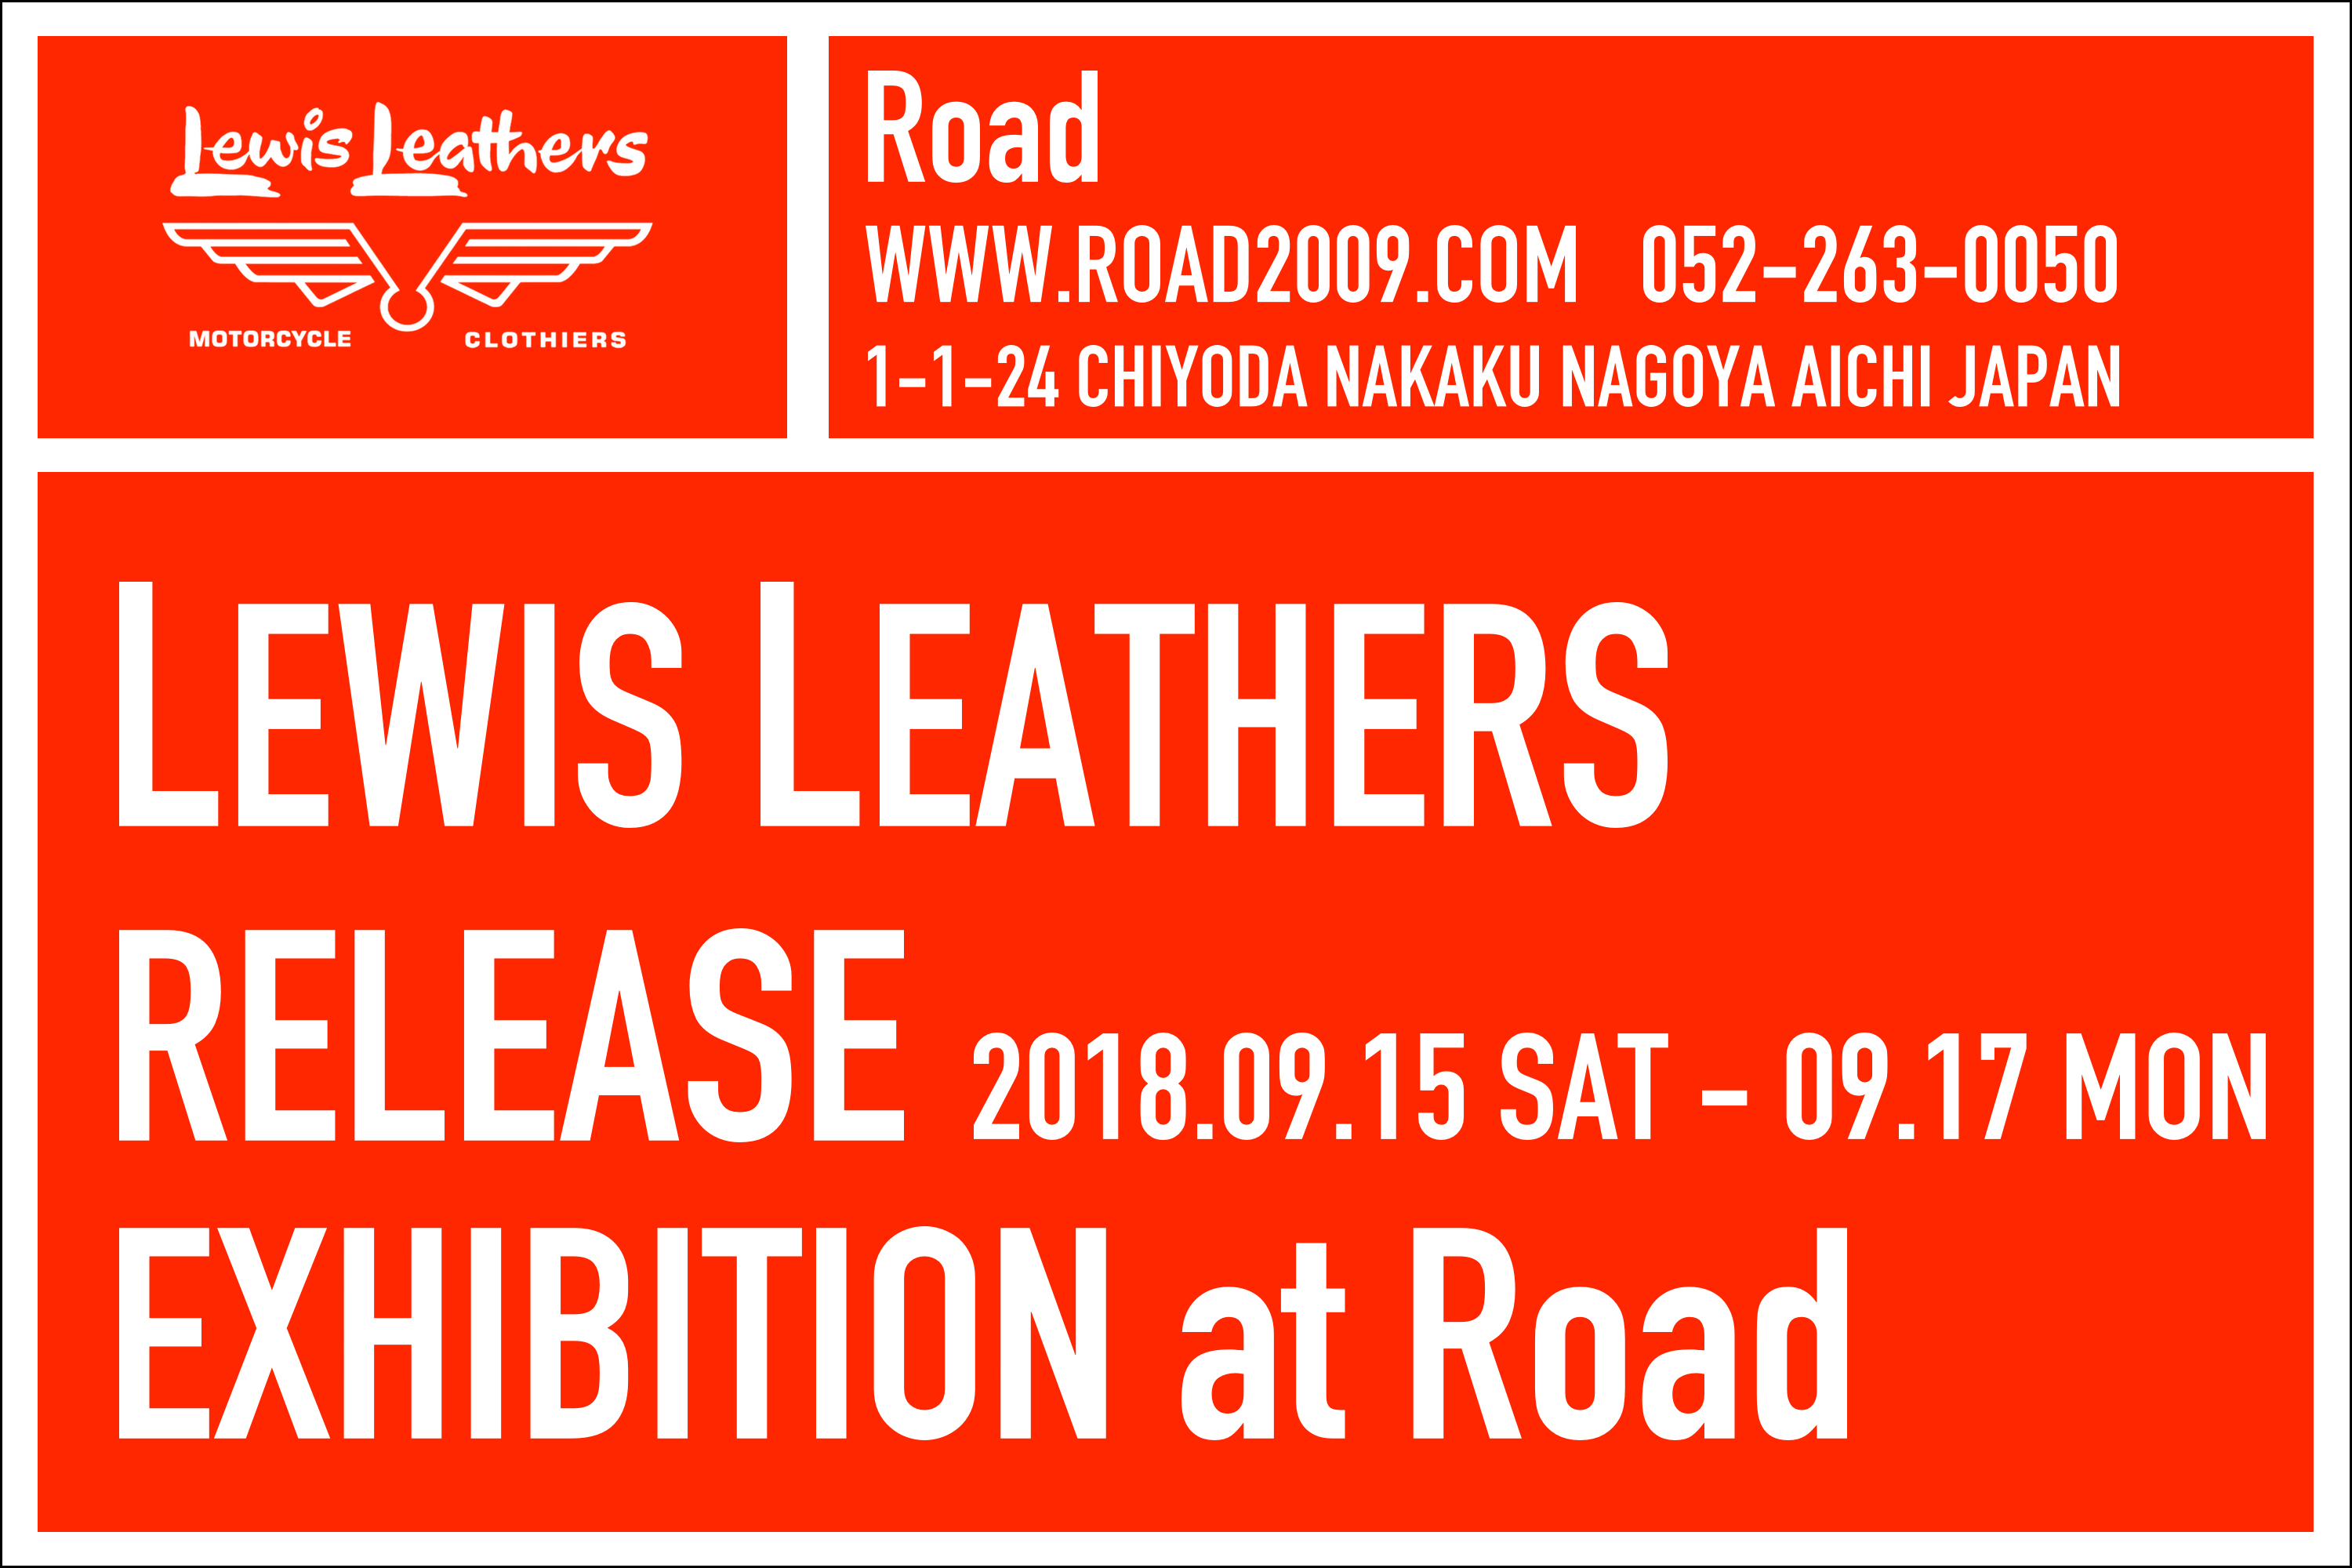 LEWIS LEATHERS RELEASE EXHIBITION